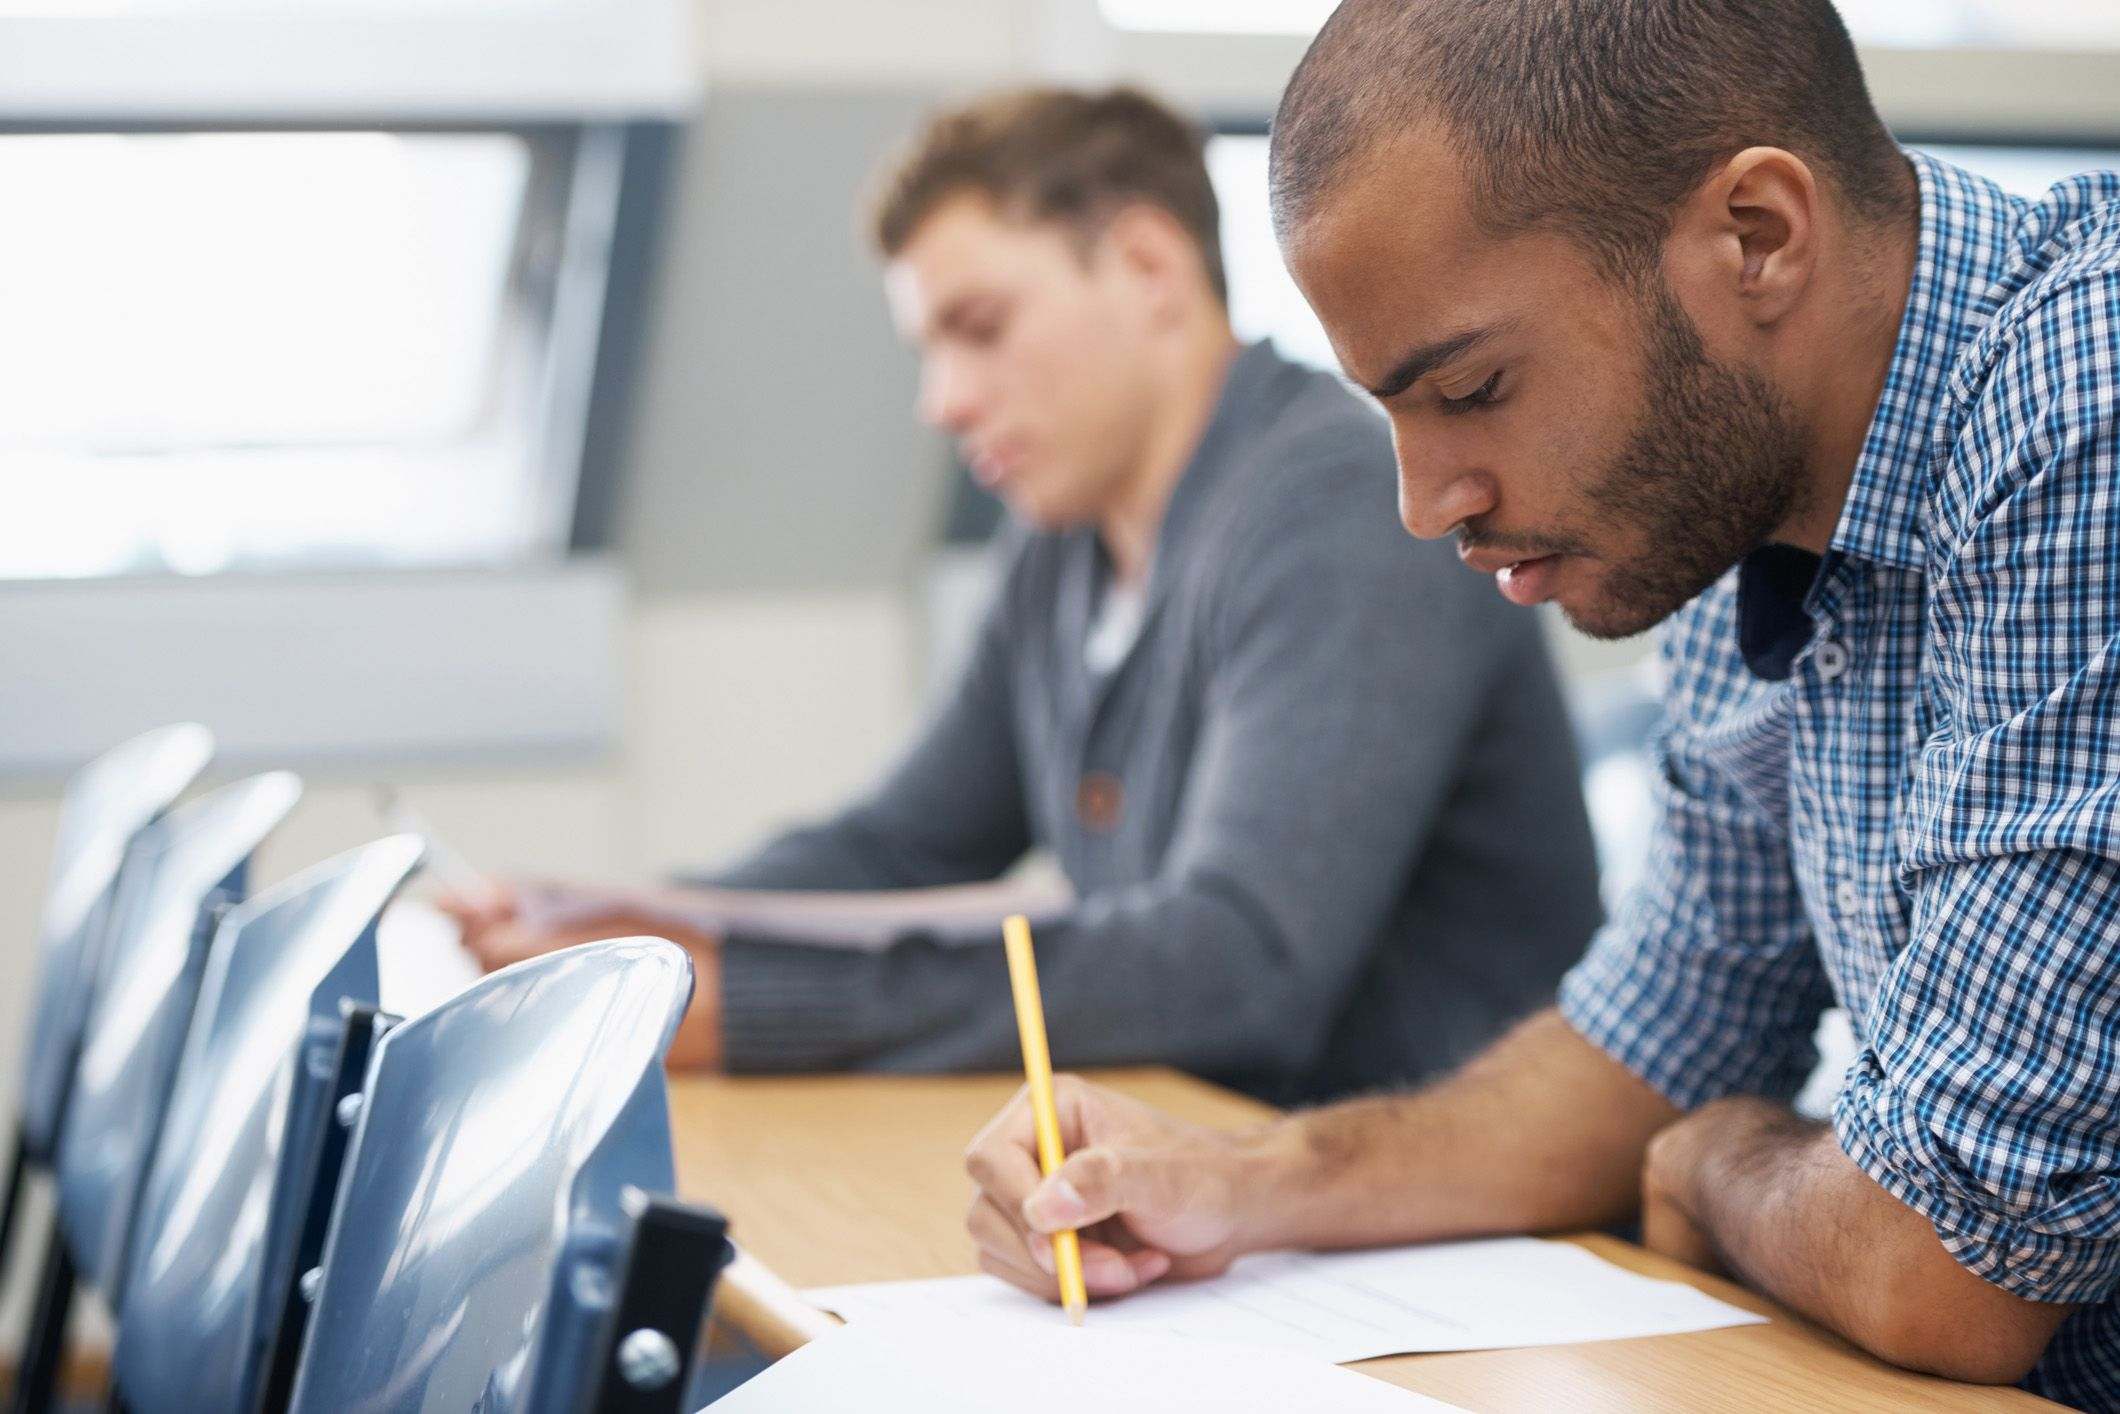 3 Pieces of RealWorld Knowledge the LSAT Tests Law